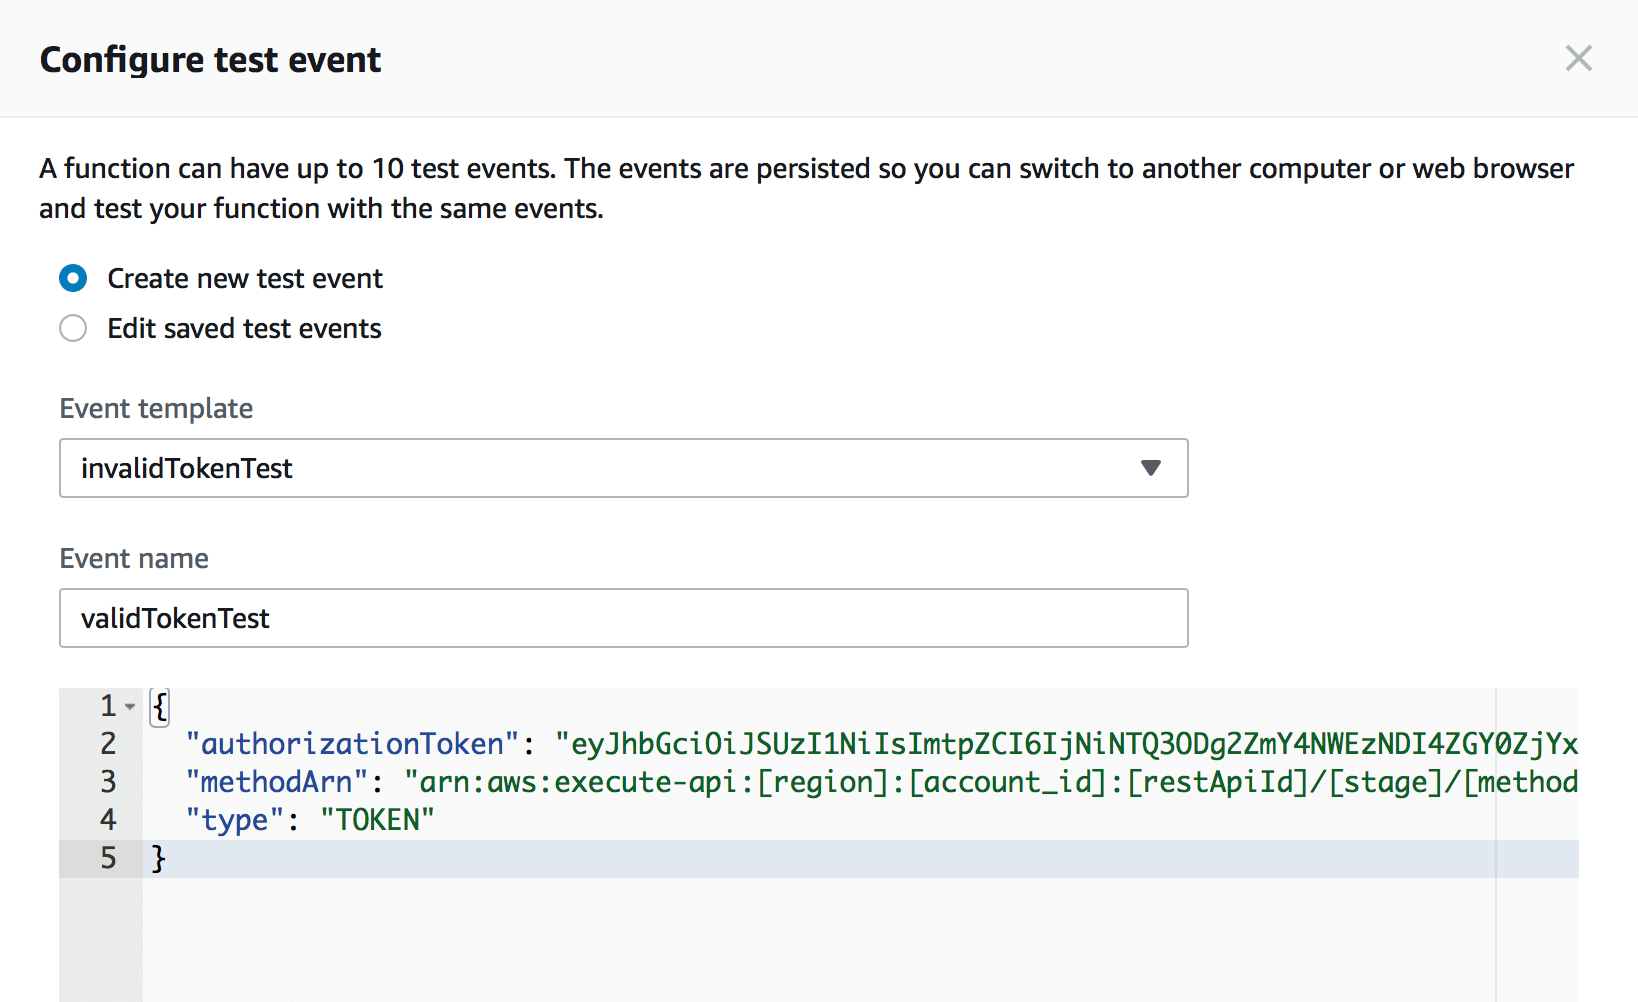 Configuring a test event with a valid token